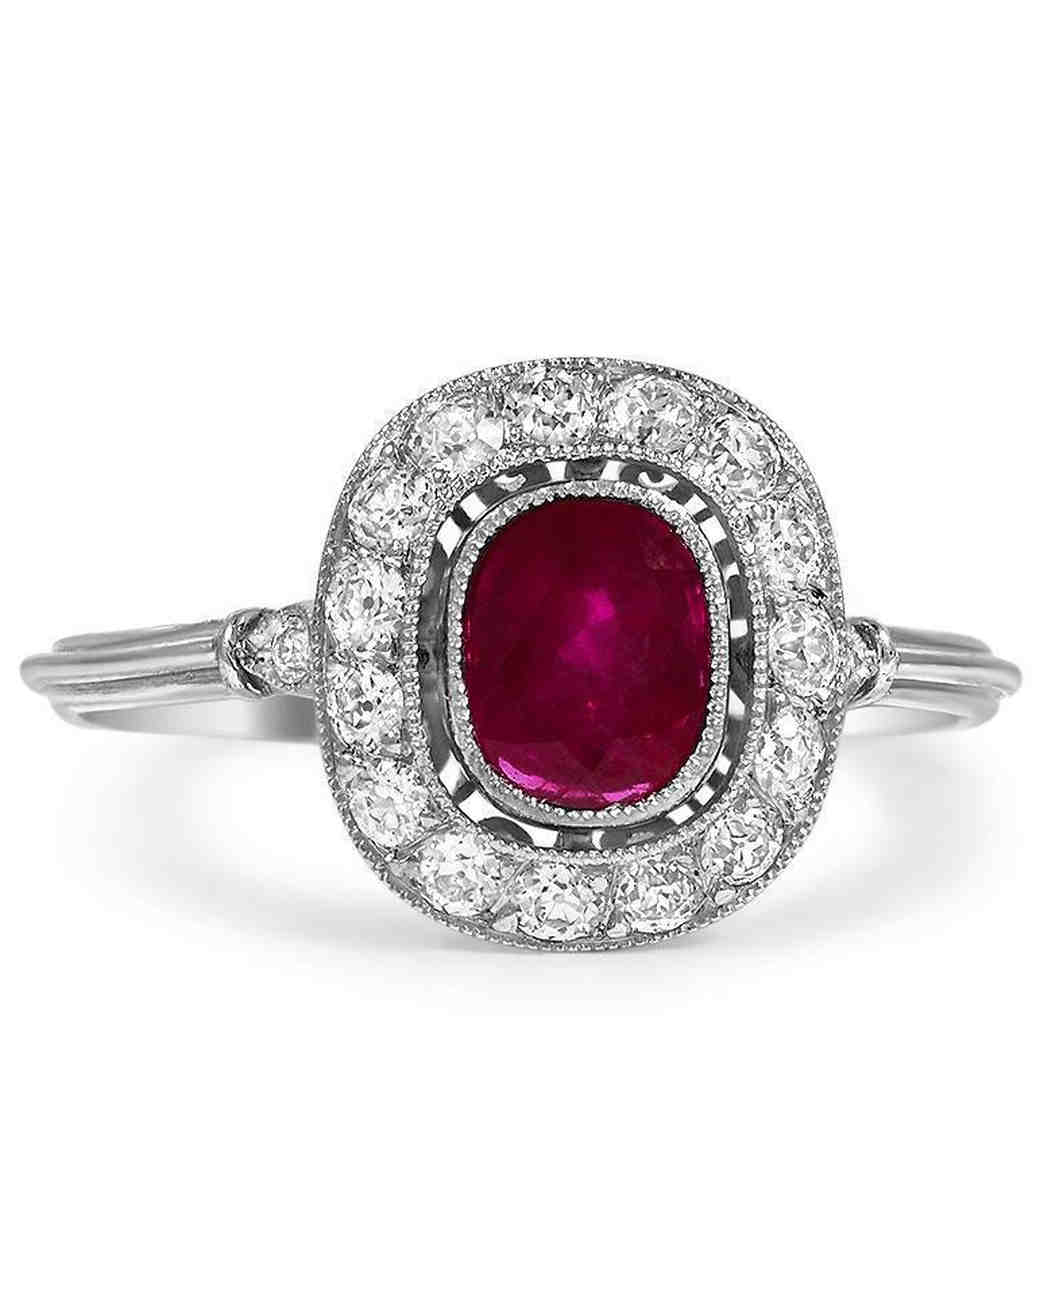 Brilliant Earth The Madelene Ruby Engagement Ring with Diamond Halo